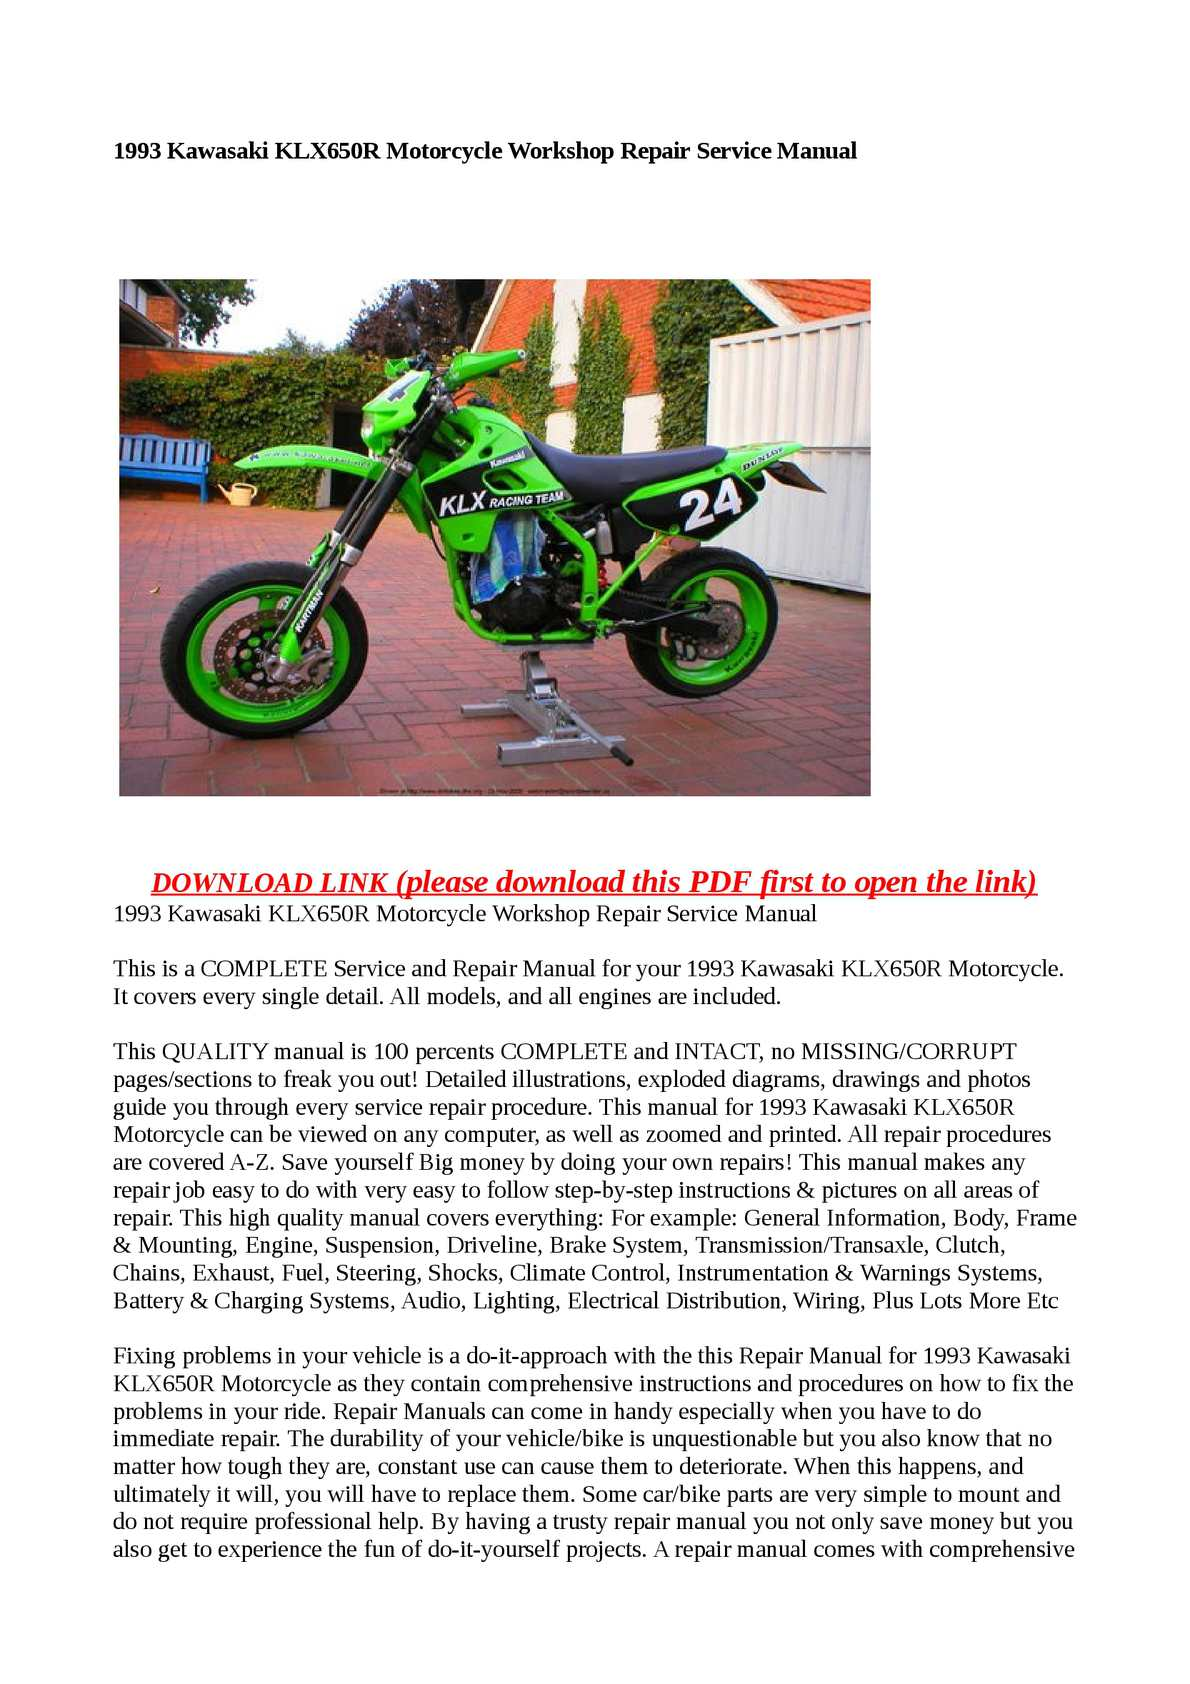 Calaméo - 1993 Kawasaki KLX650R Motorcycle Workshop Repair Service Manual